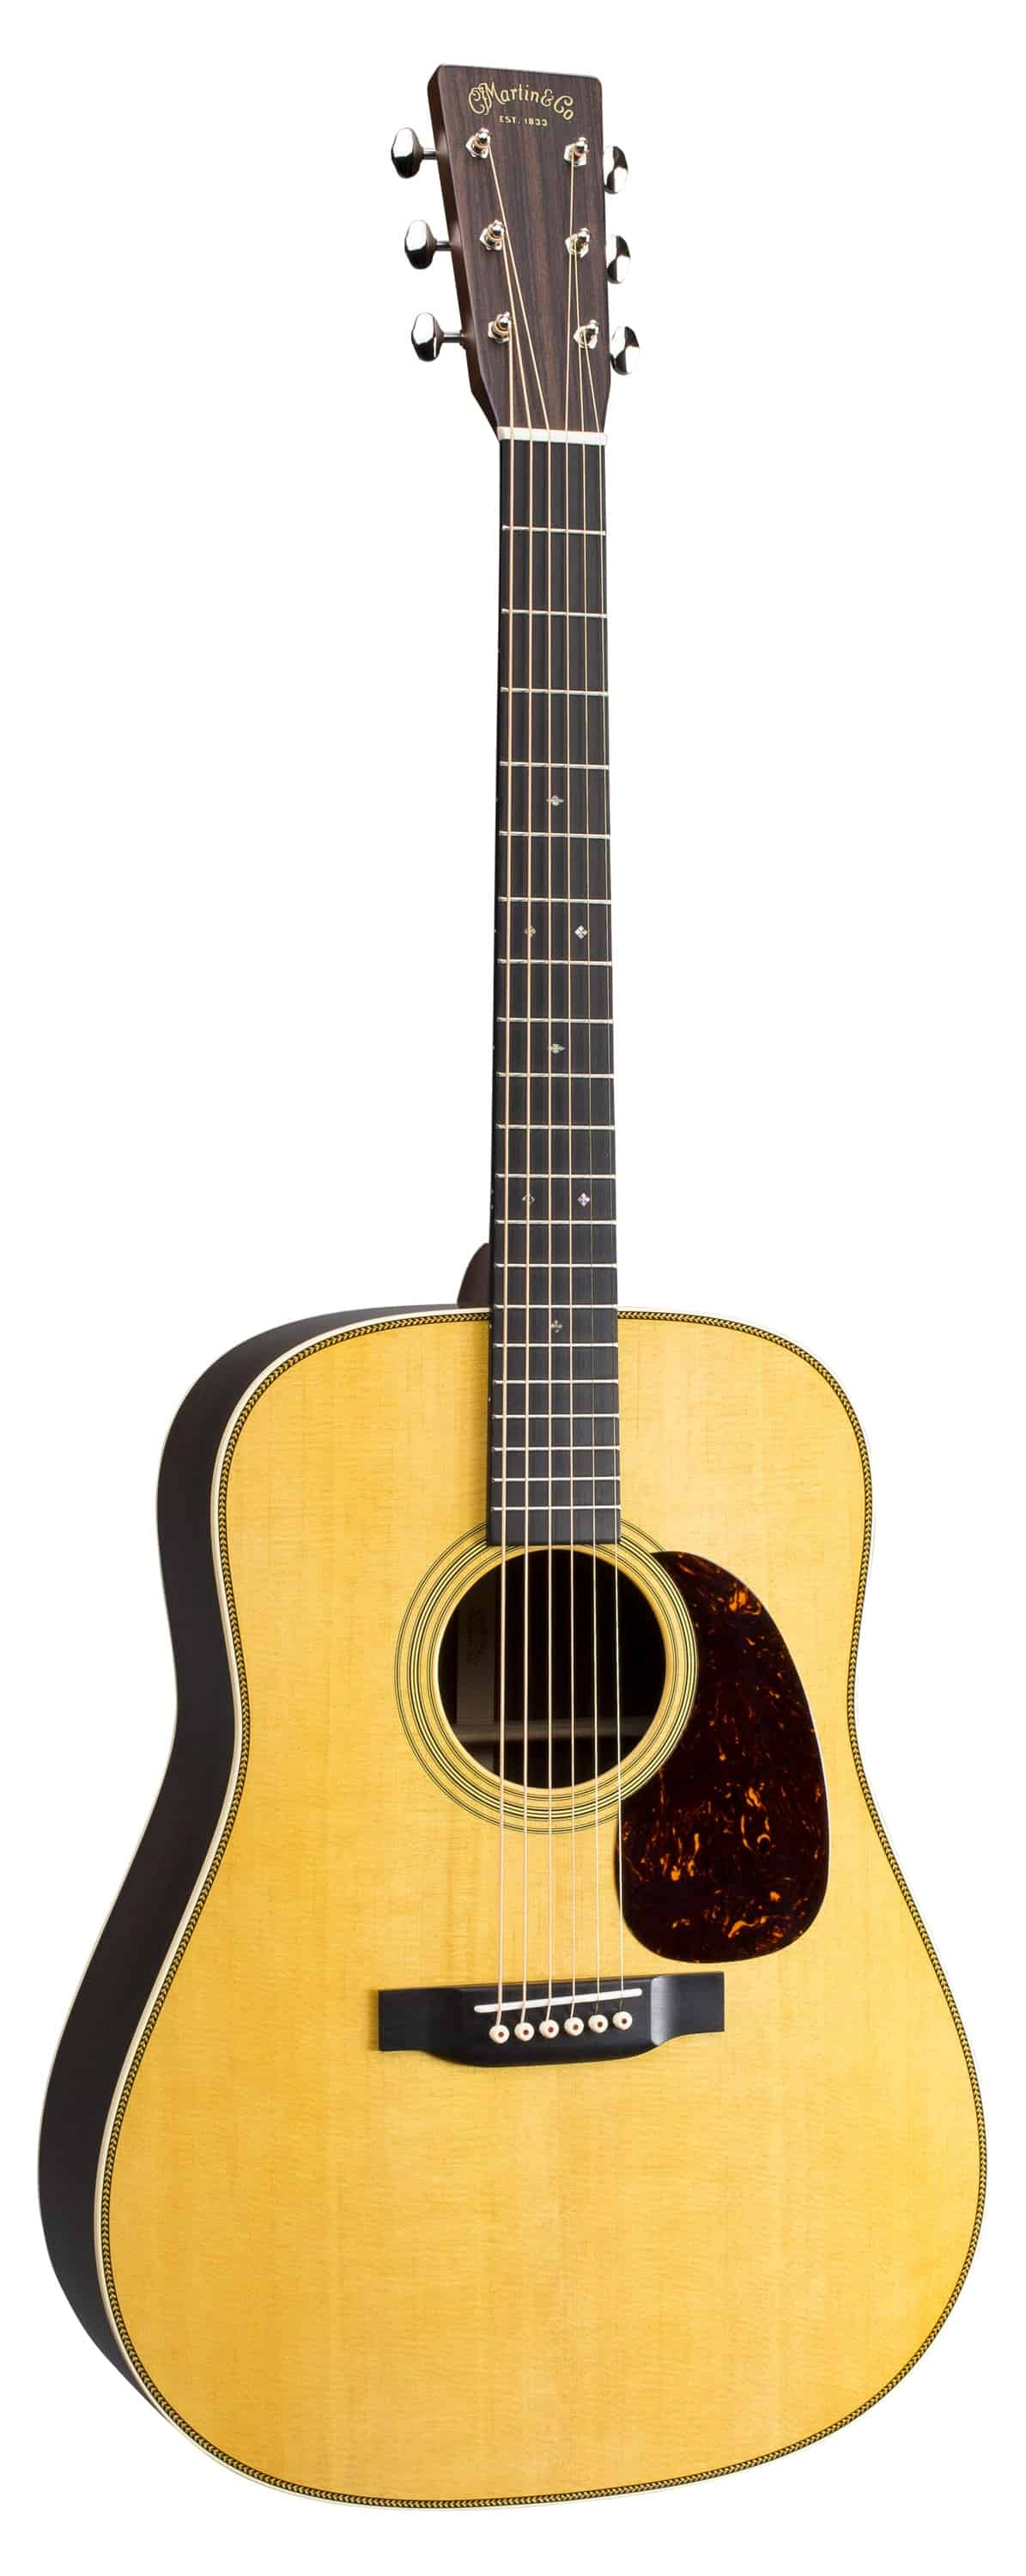 HD28 acoustic guitar is our top choice for acoustics.  Its well made and has a deep warm tone, but the high notes still have that shimmer.